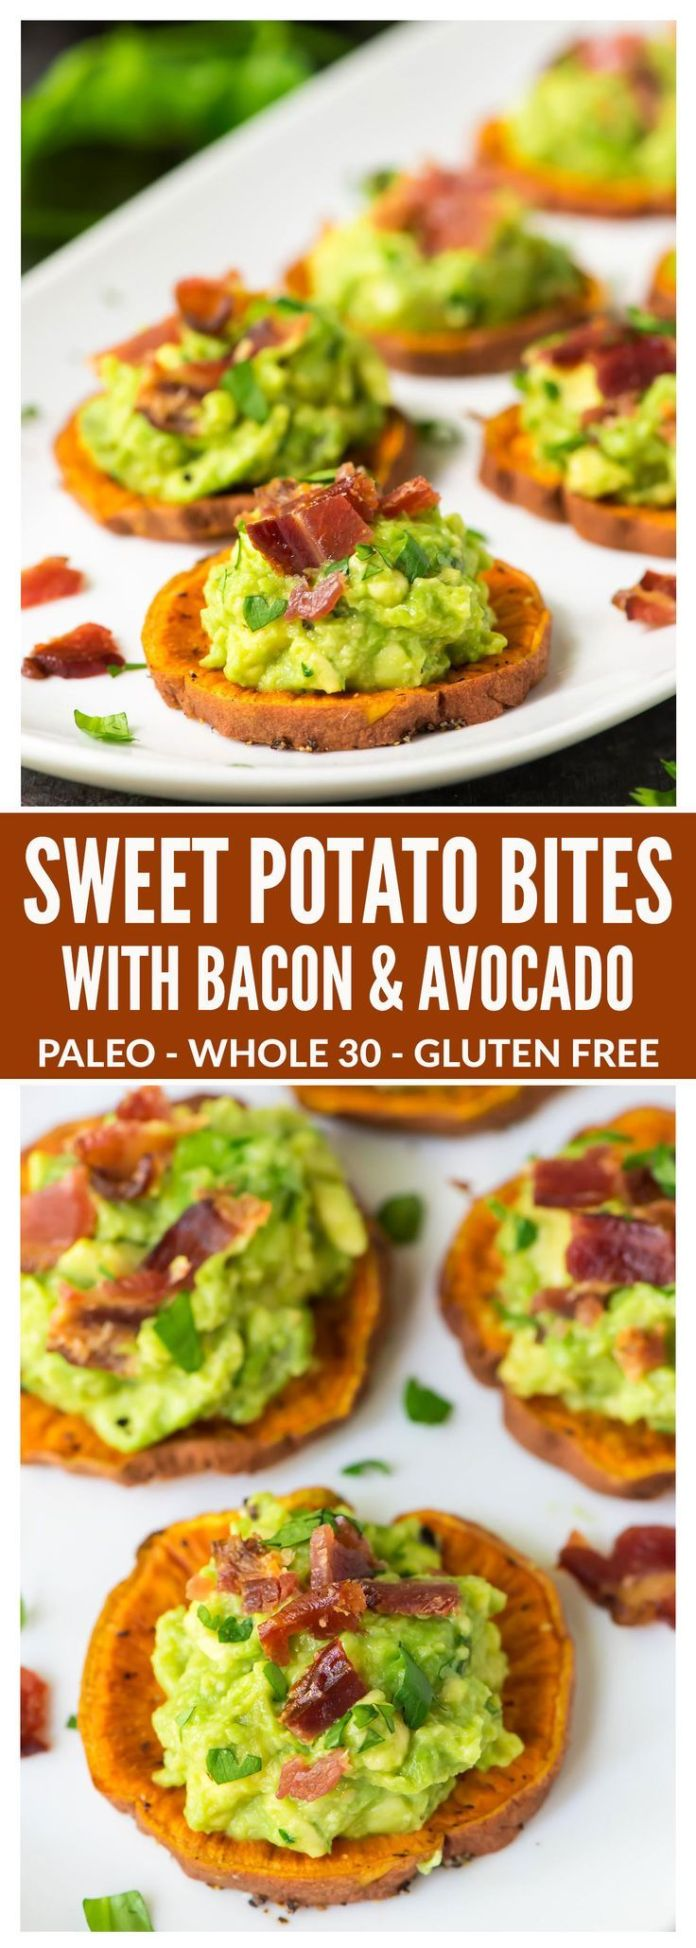 Sweet Potato Bites with Bacon and Avocado. Great finger food for game day and fo...